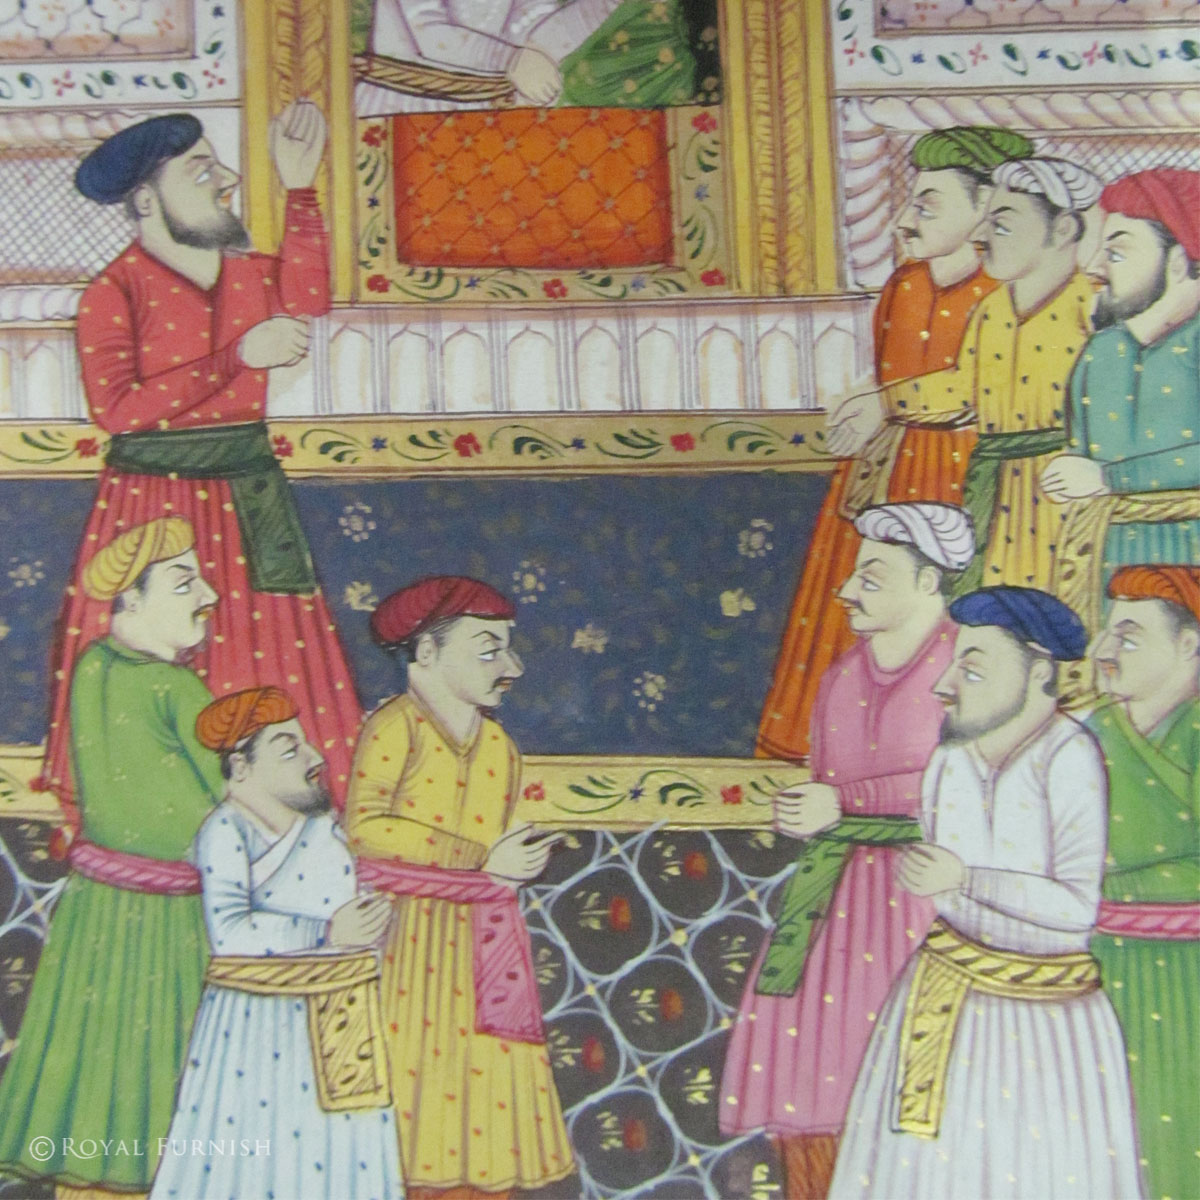 mughal dynasty essay Babur a chagtai turk was descended on his father's side from taimur and on his mother's side with changez khan he was the son of umar shaikh mirza in 1494 babur ascended the throne of a small.